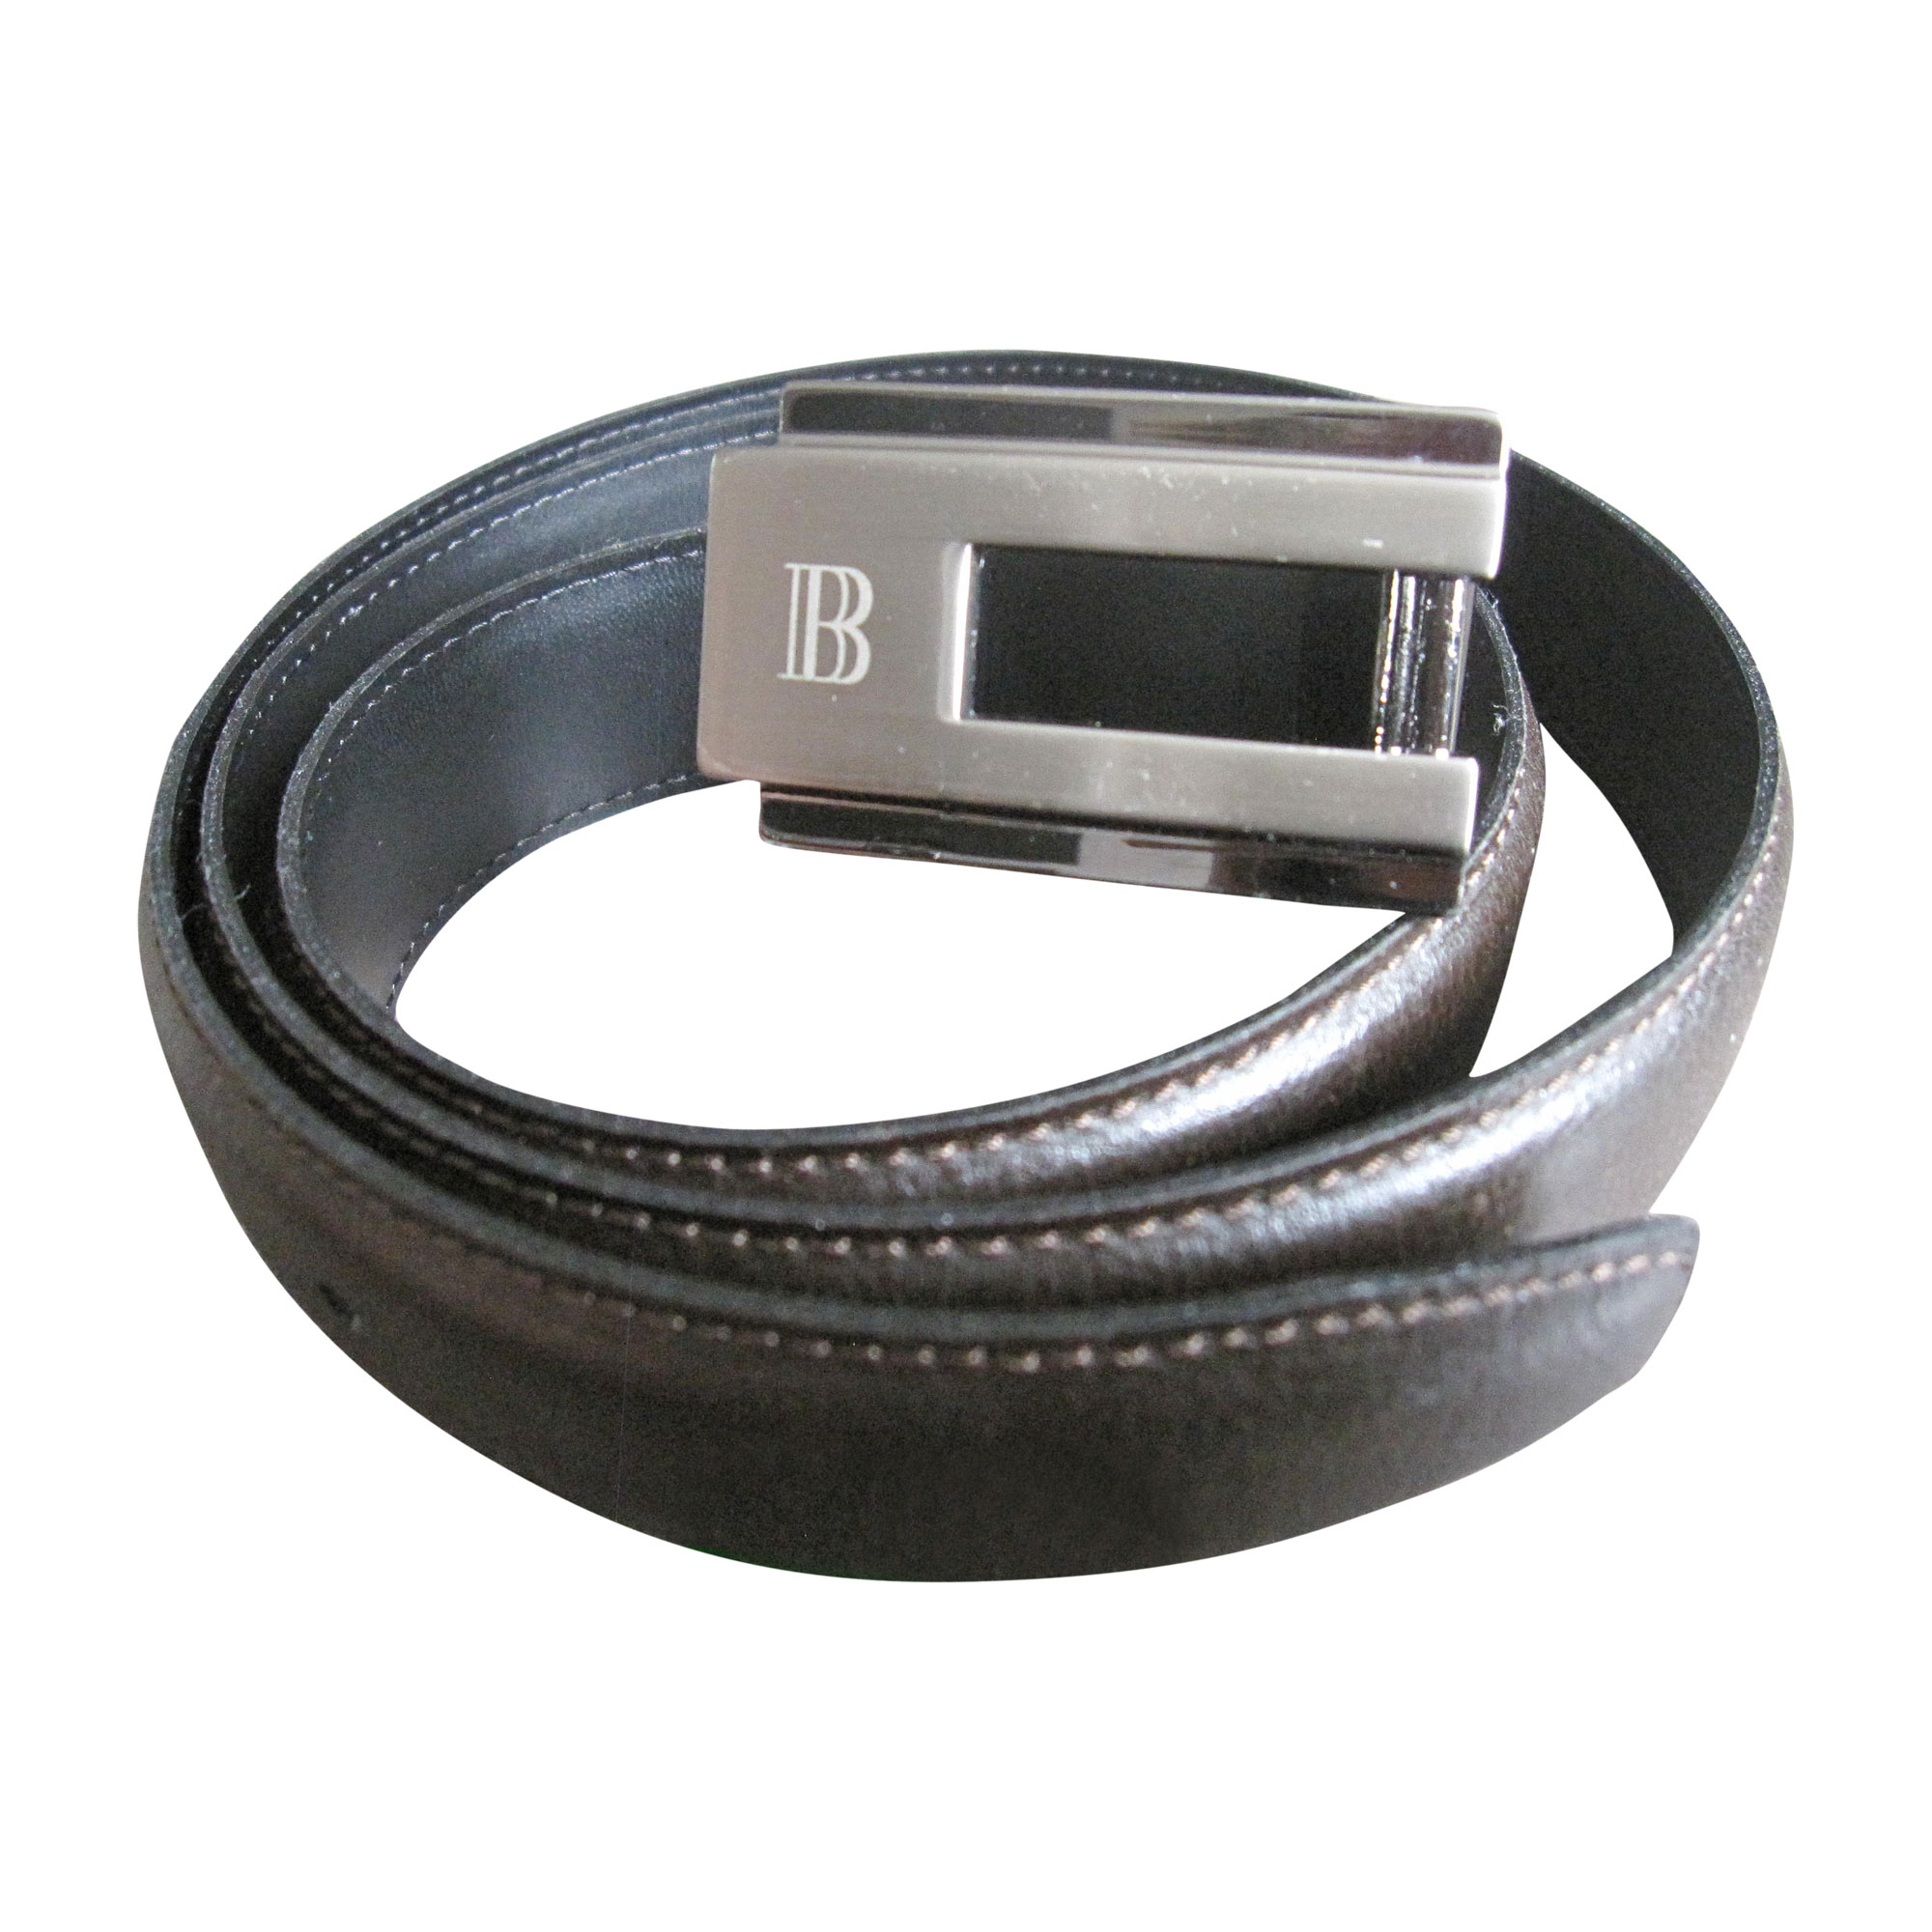 Ceinture BALMAIN 90 marron vendu par Cassy for you - 7702991 2f952579857